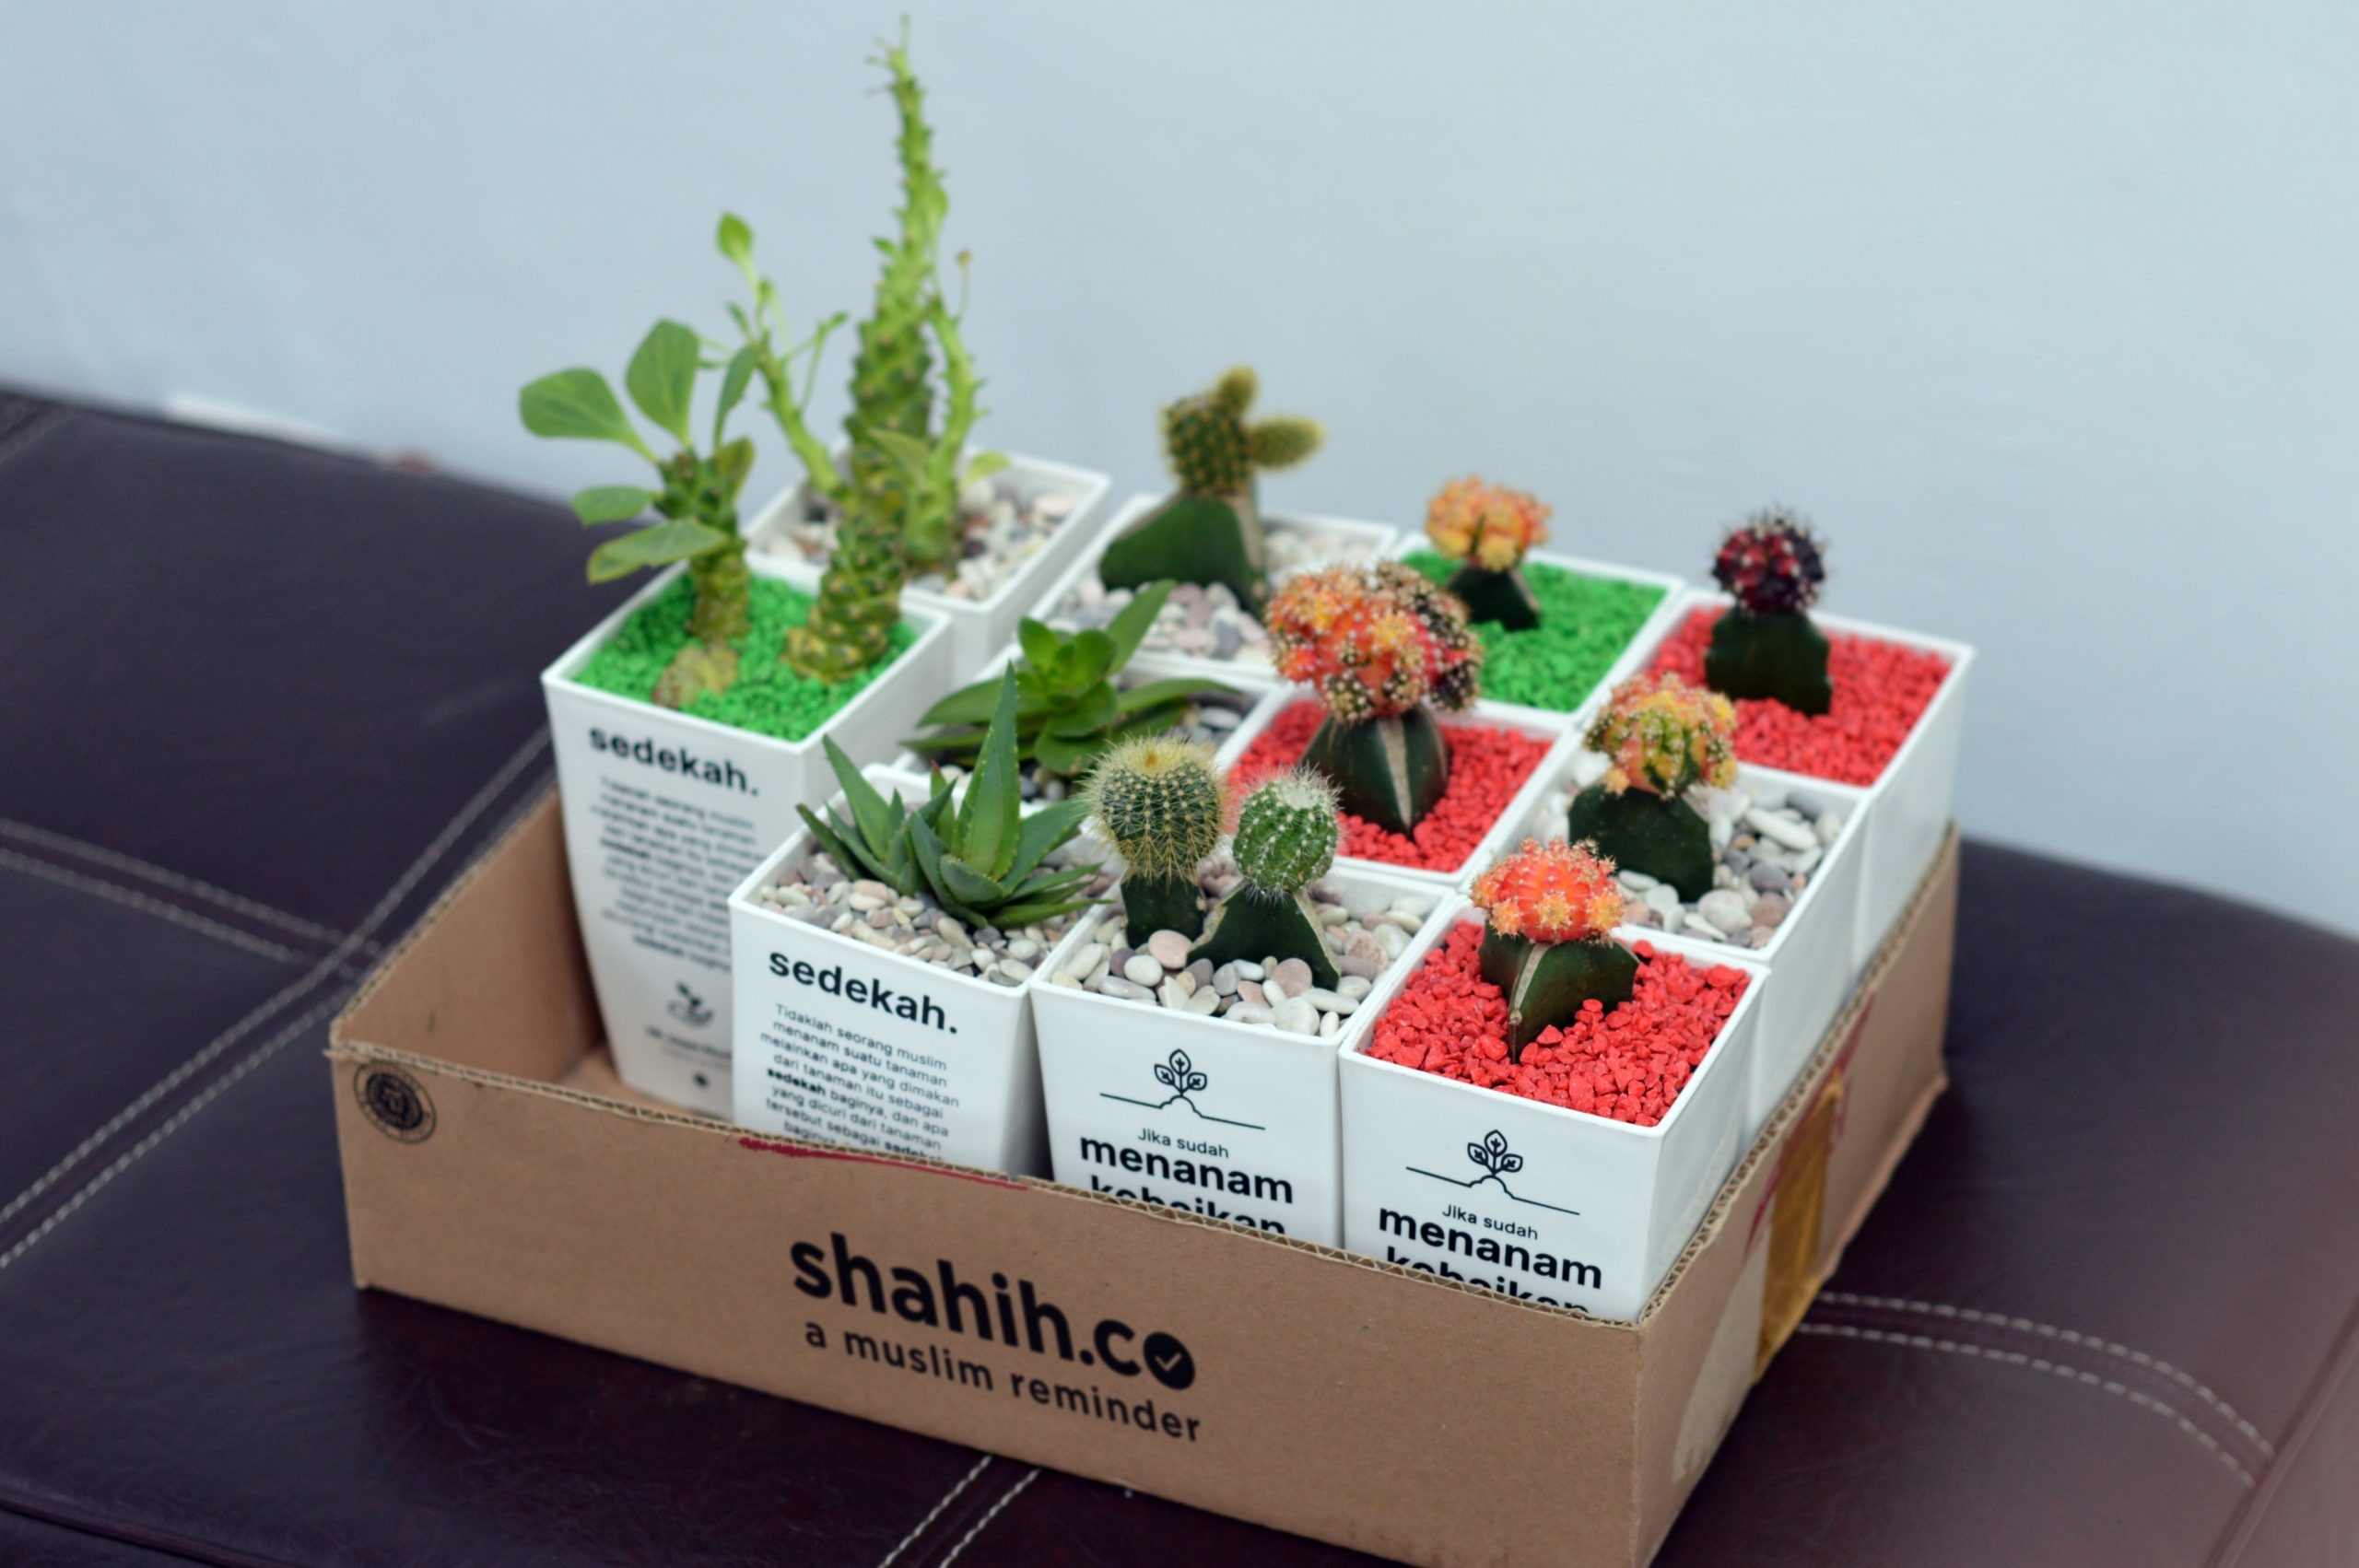 Is there a way to relocate your plants abroad